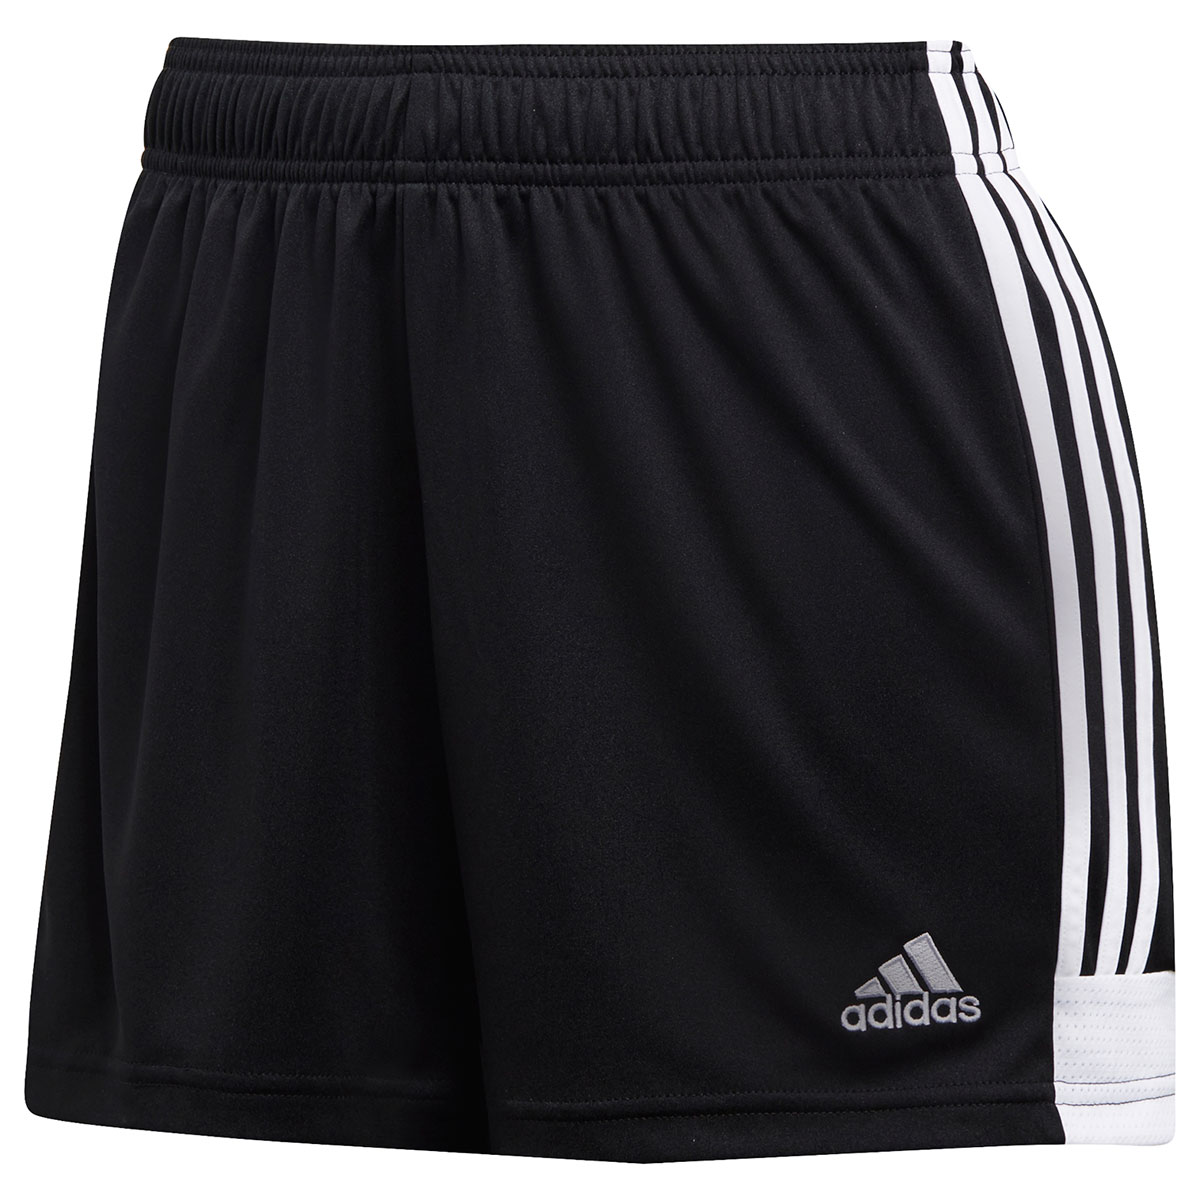 Adidas Women's Tastigo 19 Shorts - Black, M